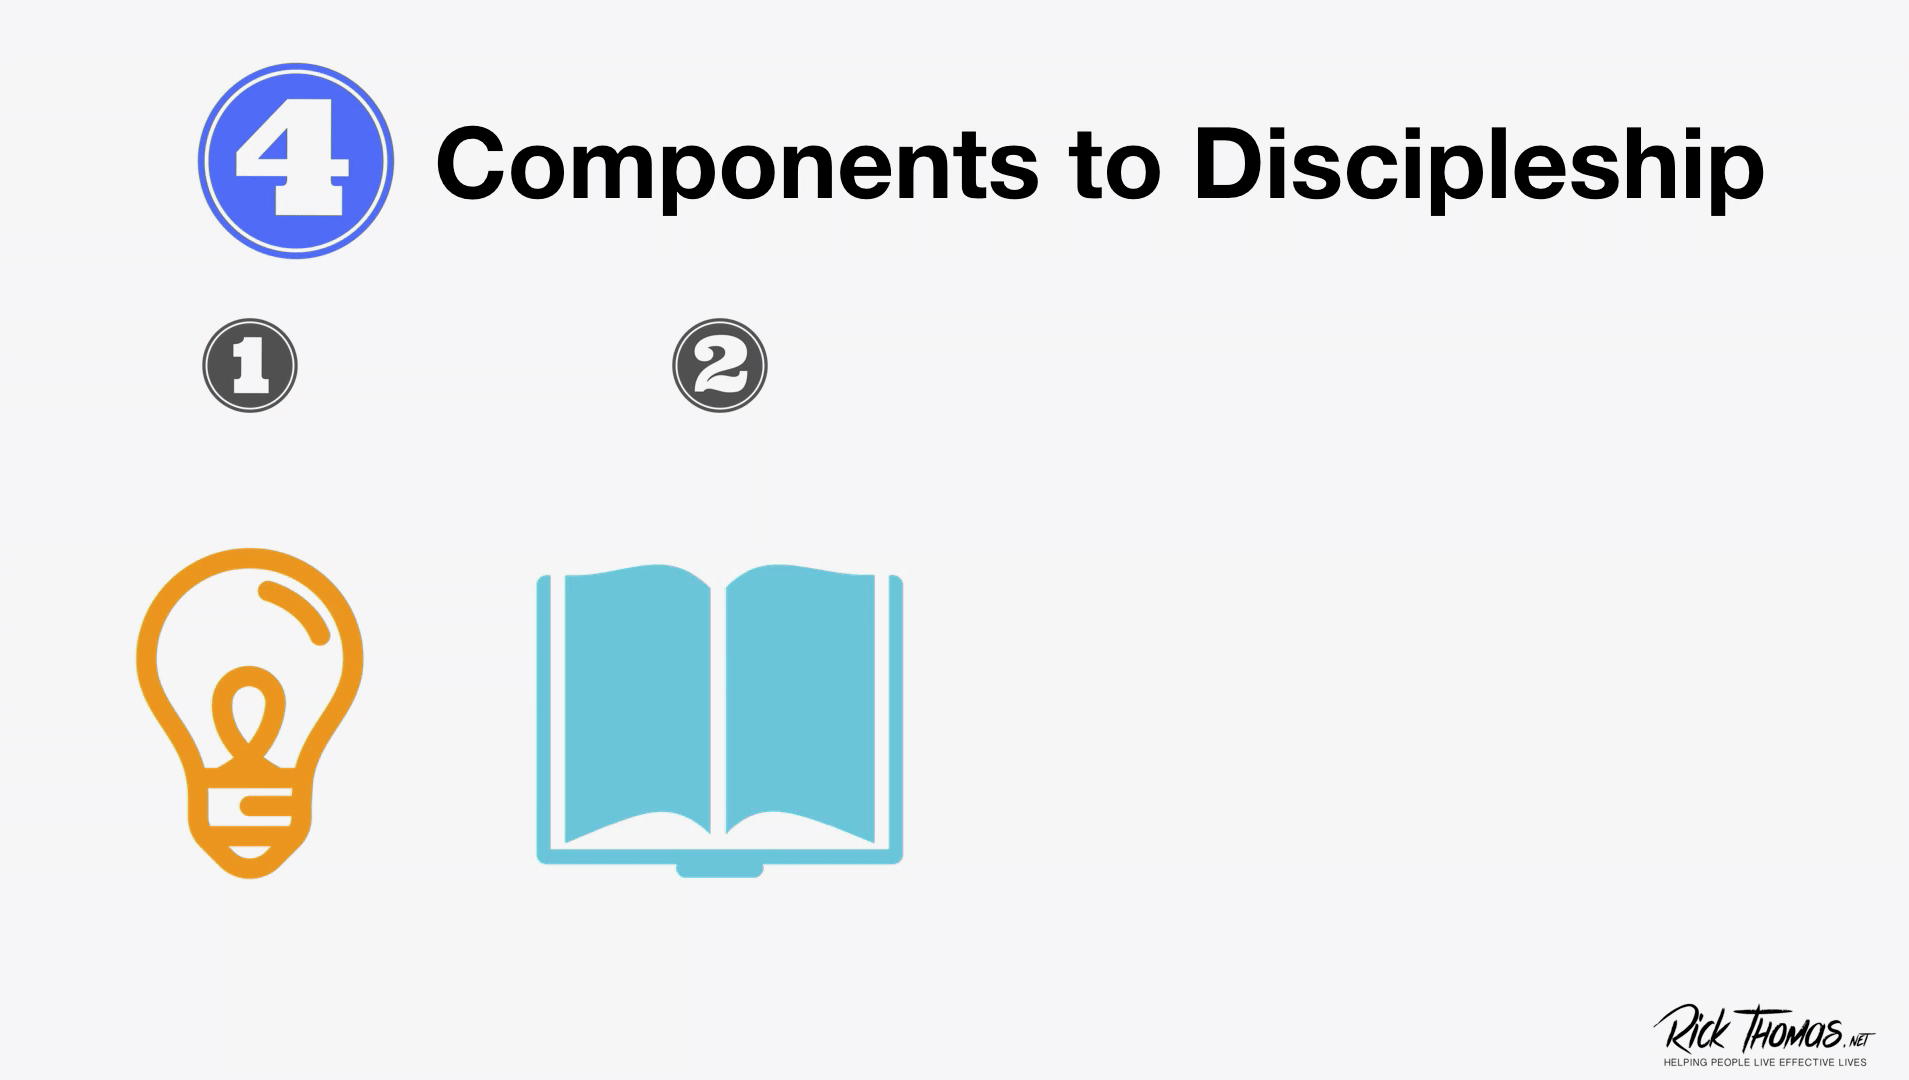 Video Channel Four Components of Discipleship